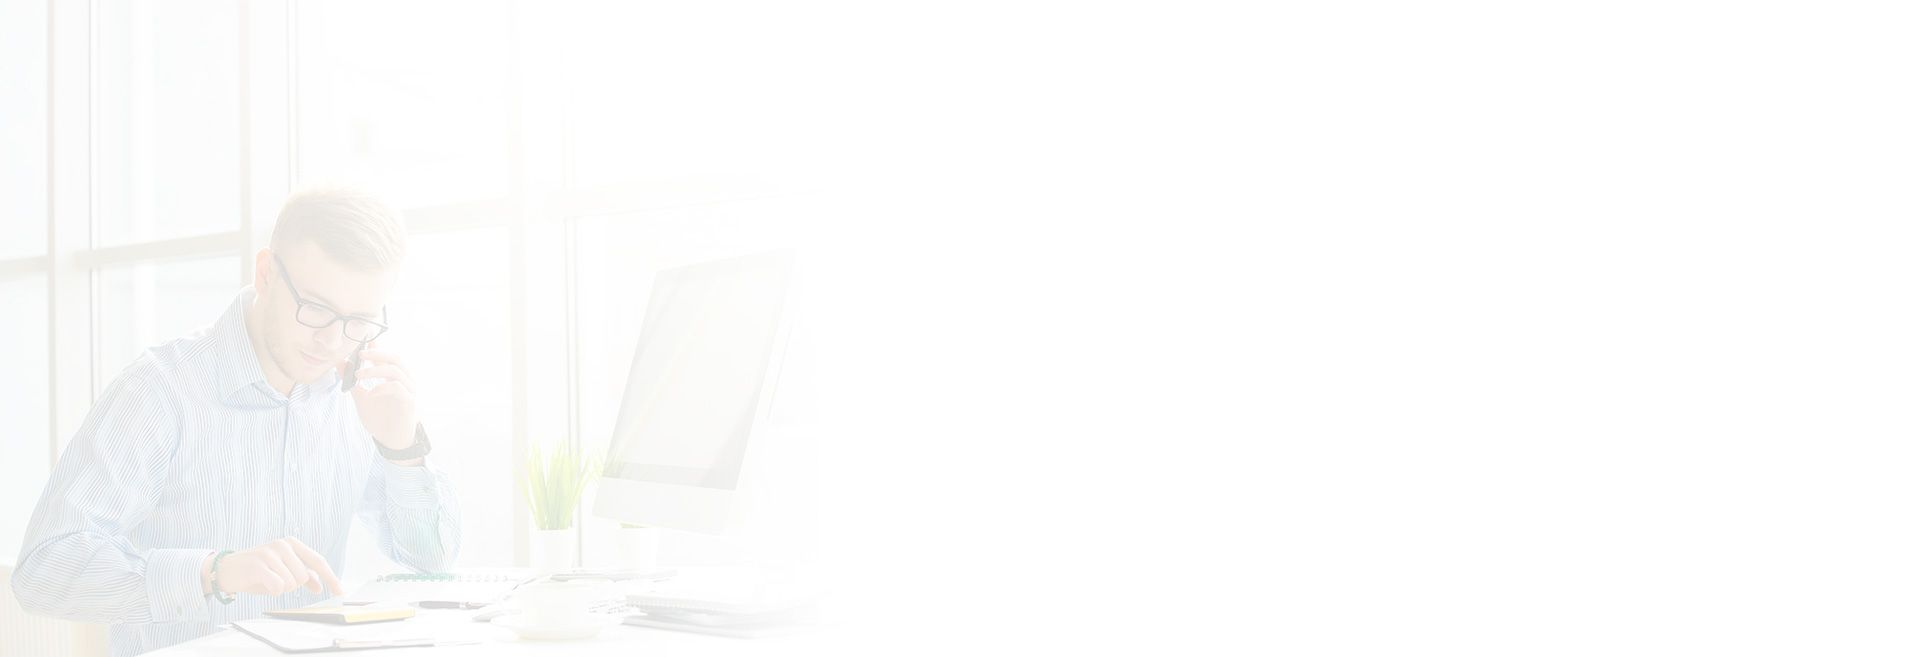 Careers-banner-2